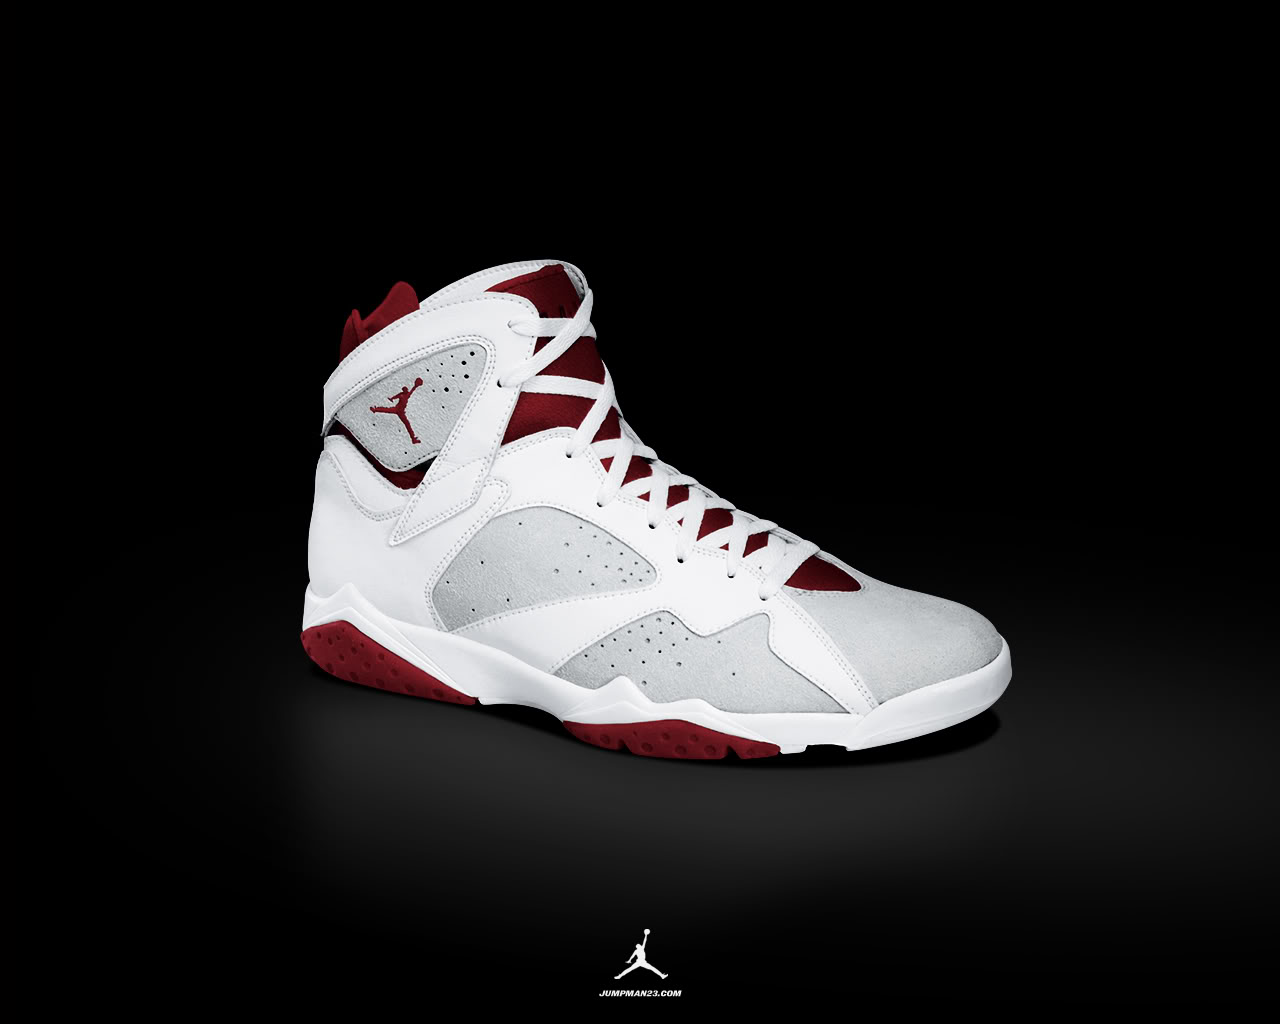 lots of jordan shoes wallpaper 1280 x 785788